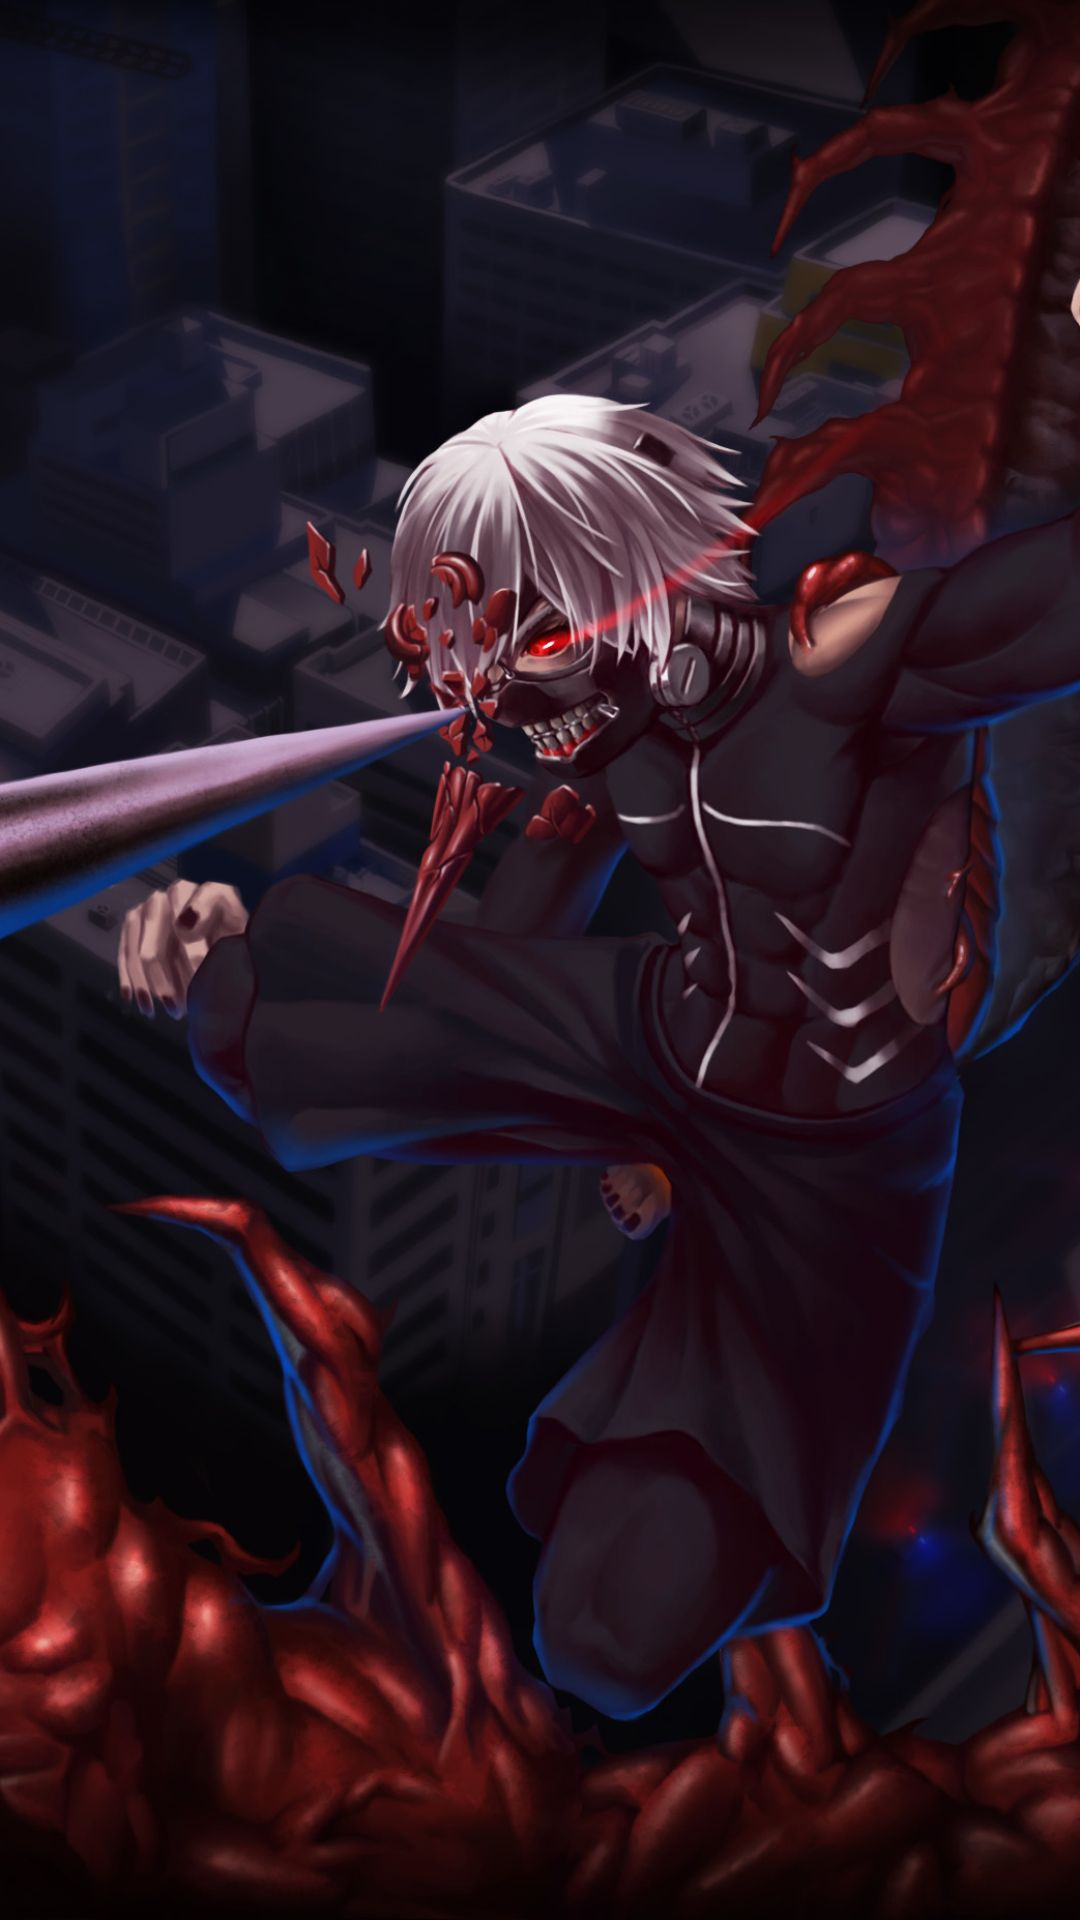 Anime Wallpaper Hd Iphone 7 In 2020 Tokyo Ghoul Wallpapers